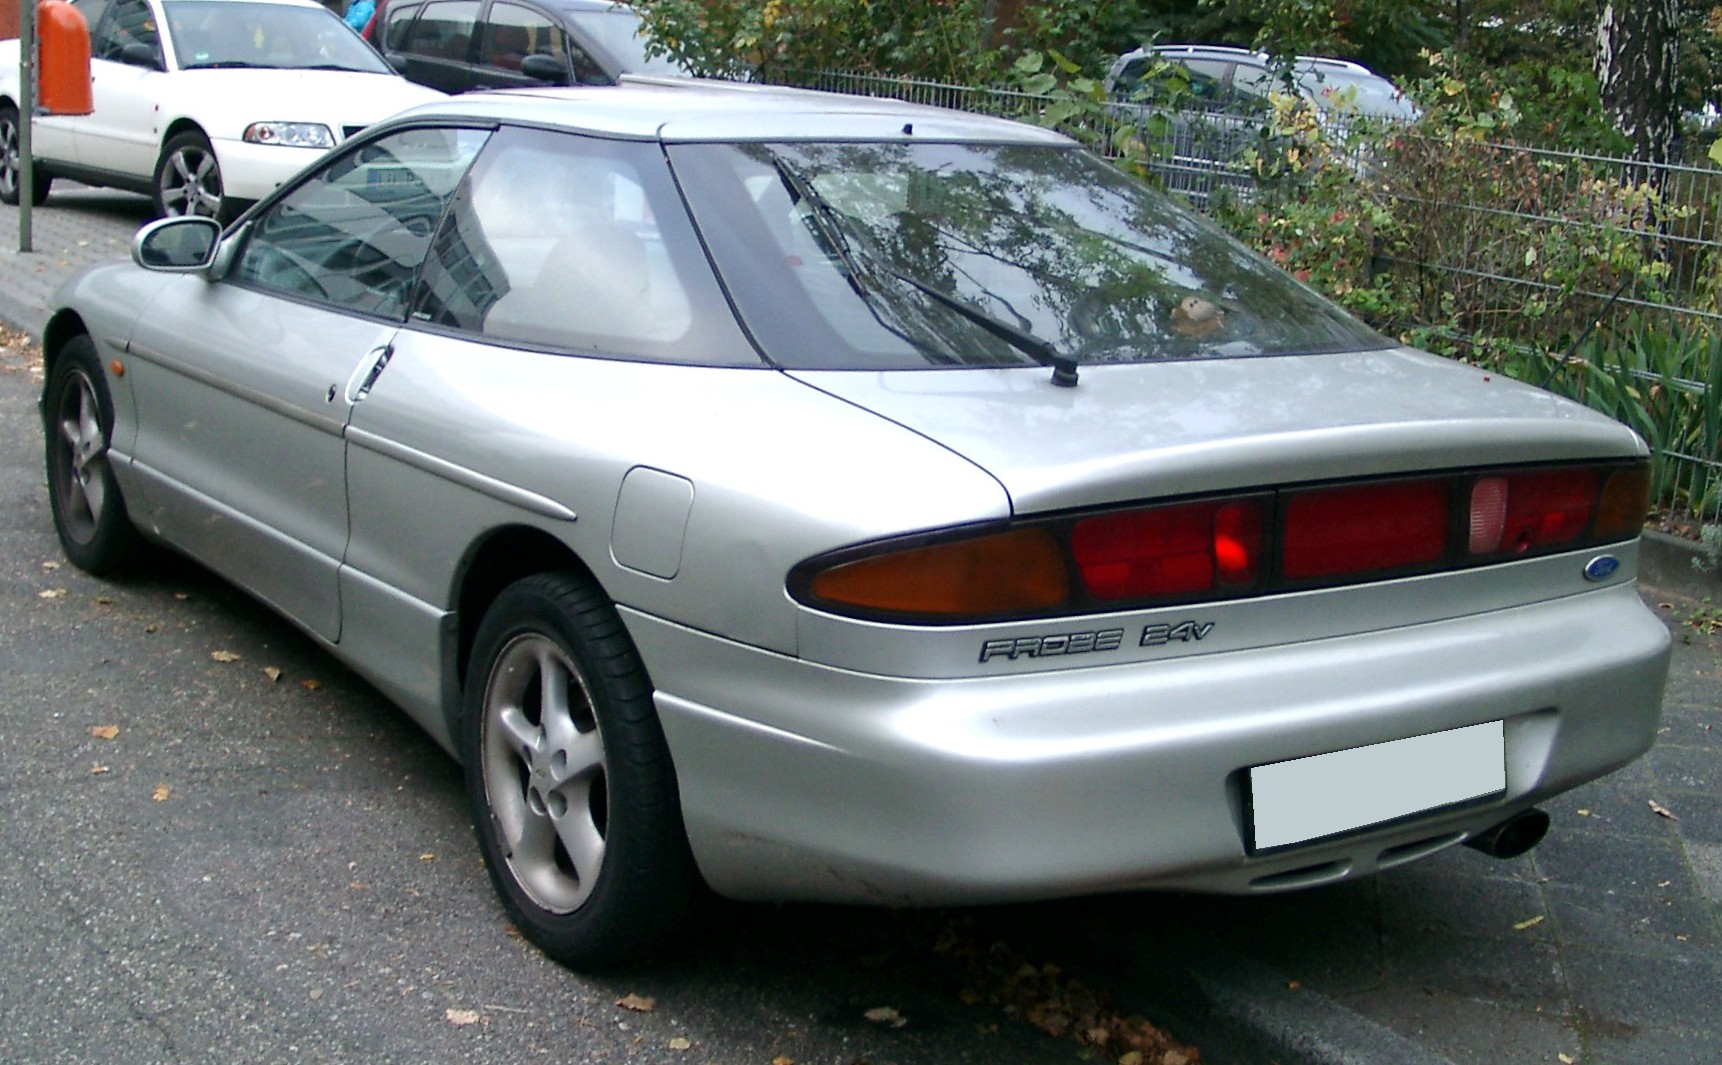 file ford probe rear wikimedia commons. Black Bedroom Furniture Sets. Home Design Ideas